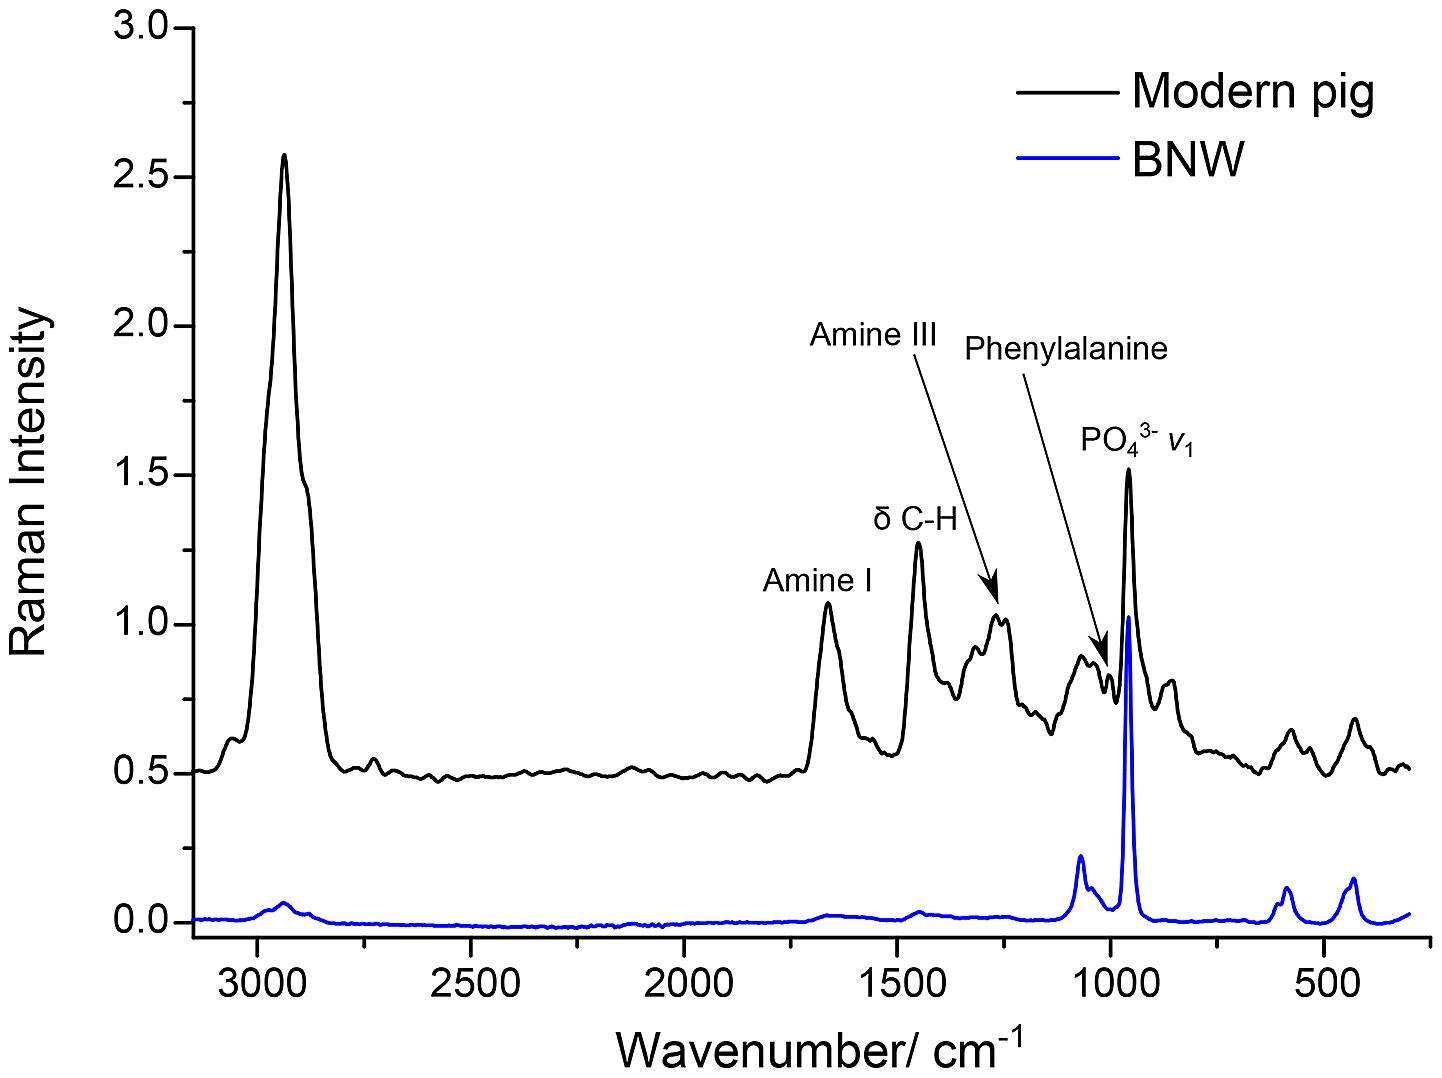 hight resolution of the ft raman spectra of a modern pig bone and the bone sample from burial 511 from ban non wat raman id 41 one of the 6 bones that displayed high protein